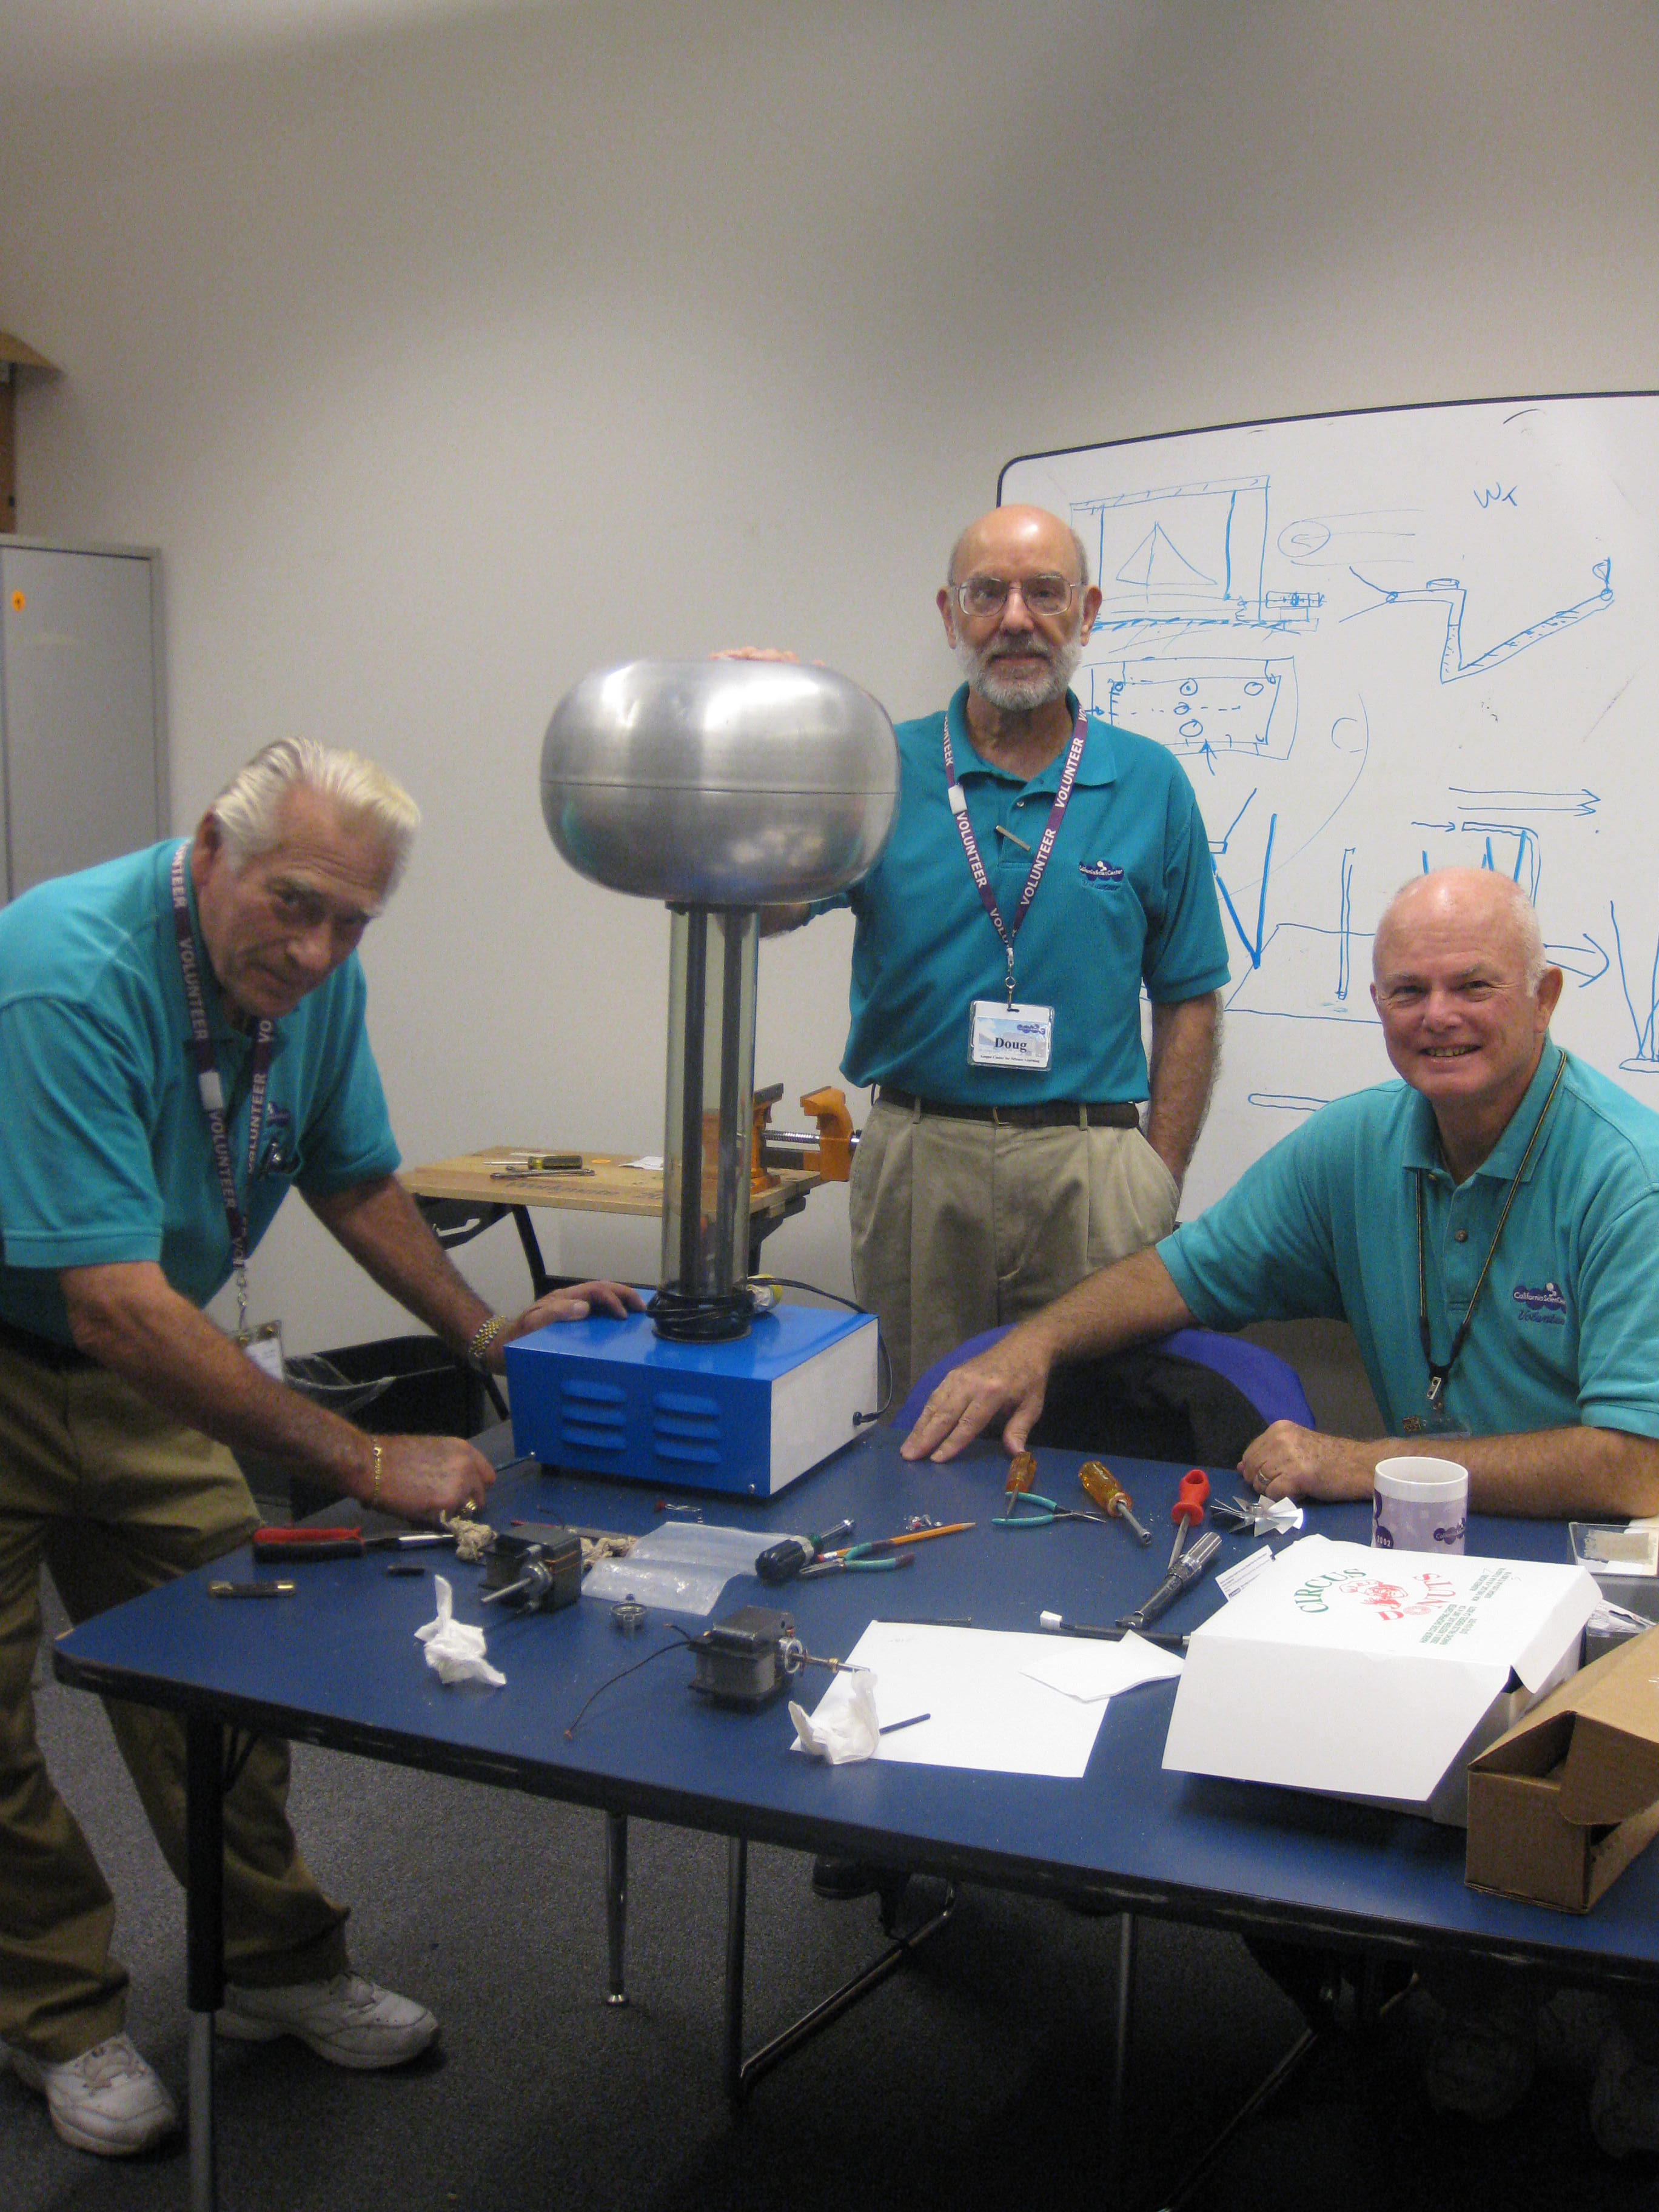 Three Air & Space Volunteers wearing teal polos stand around table with tools and parts while working on Van der Graaf Generator